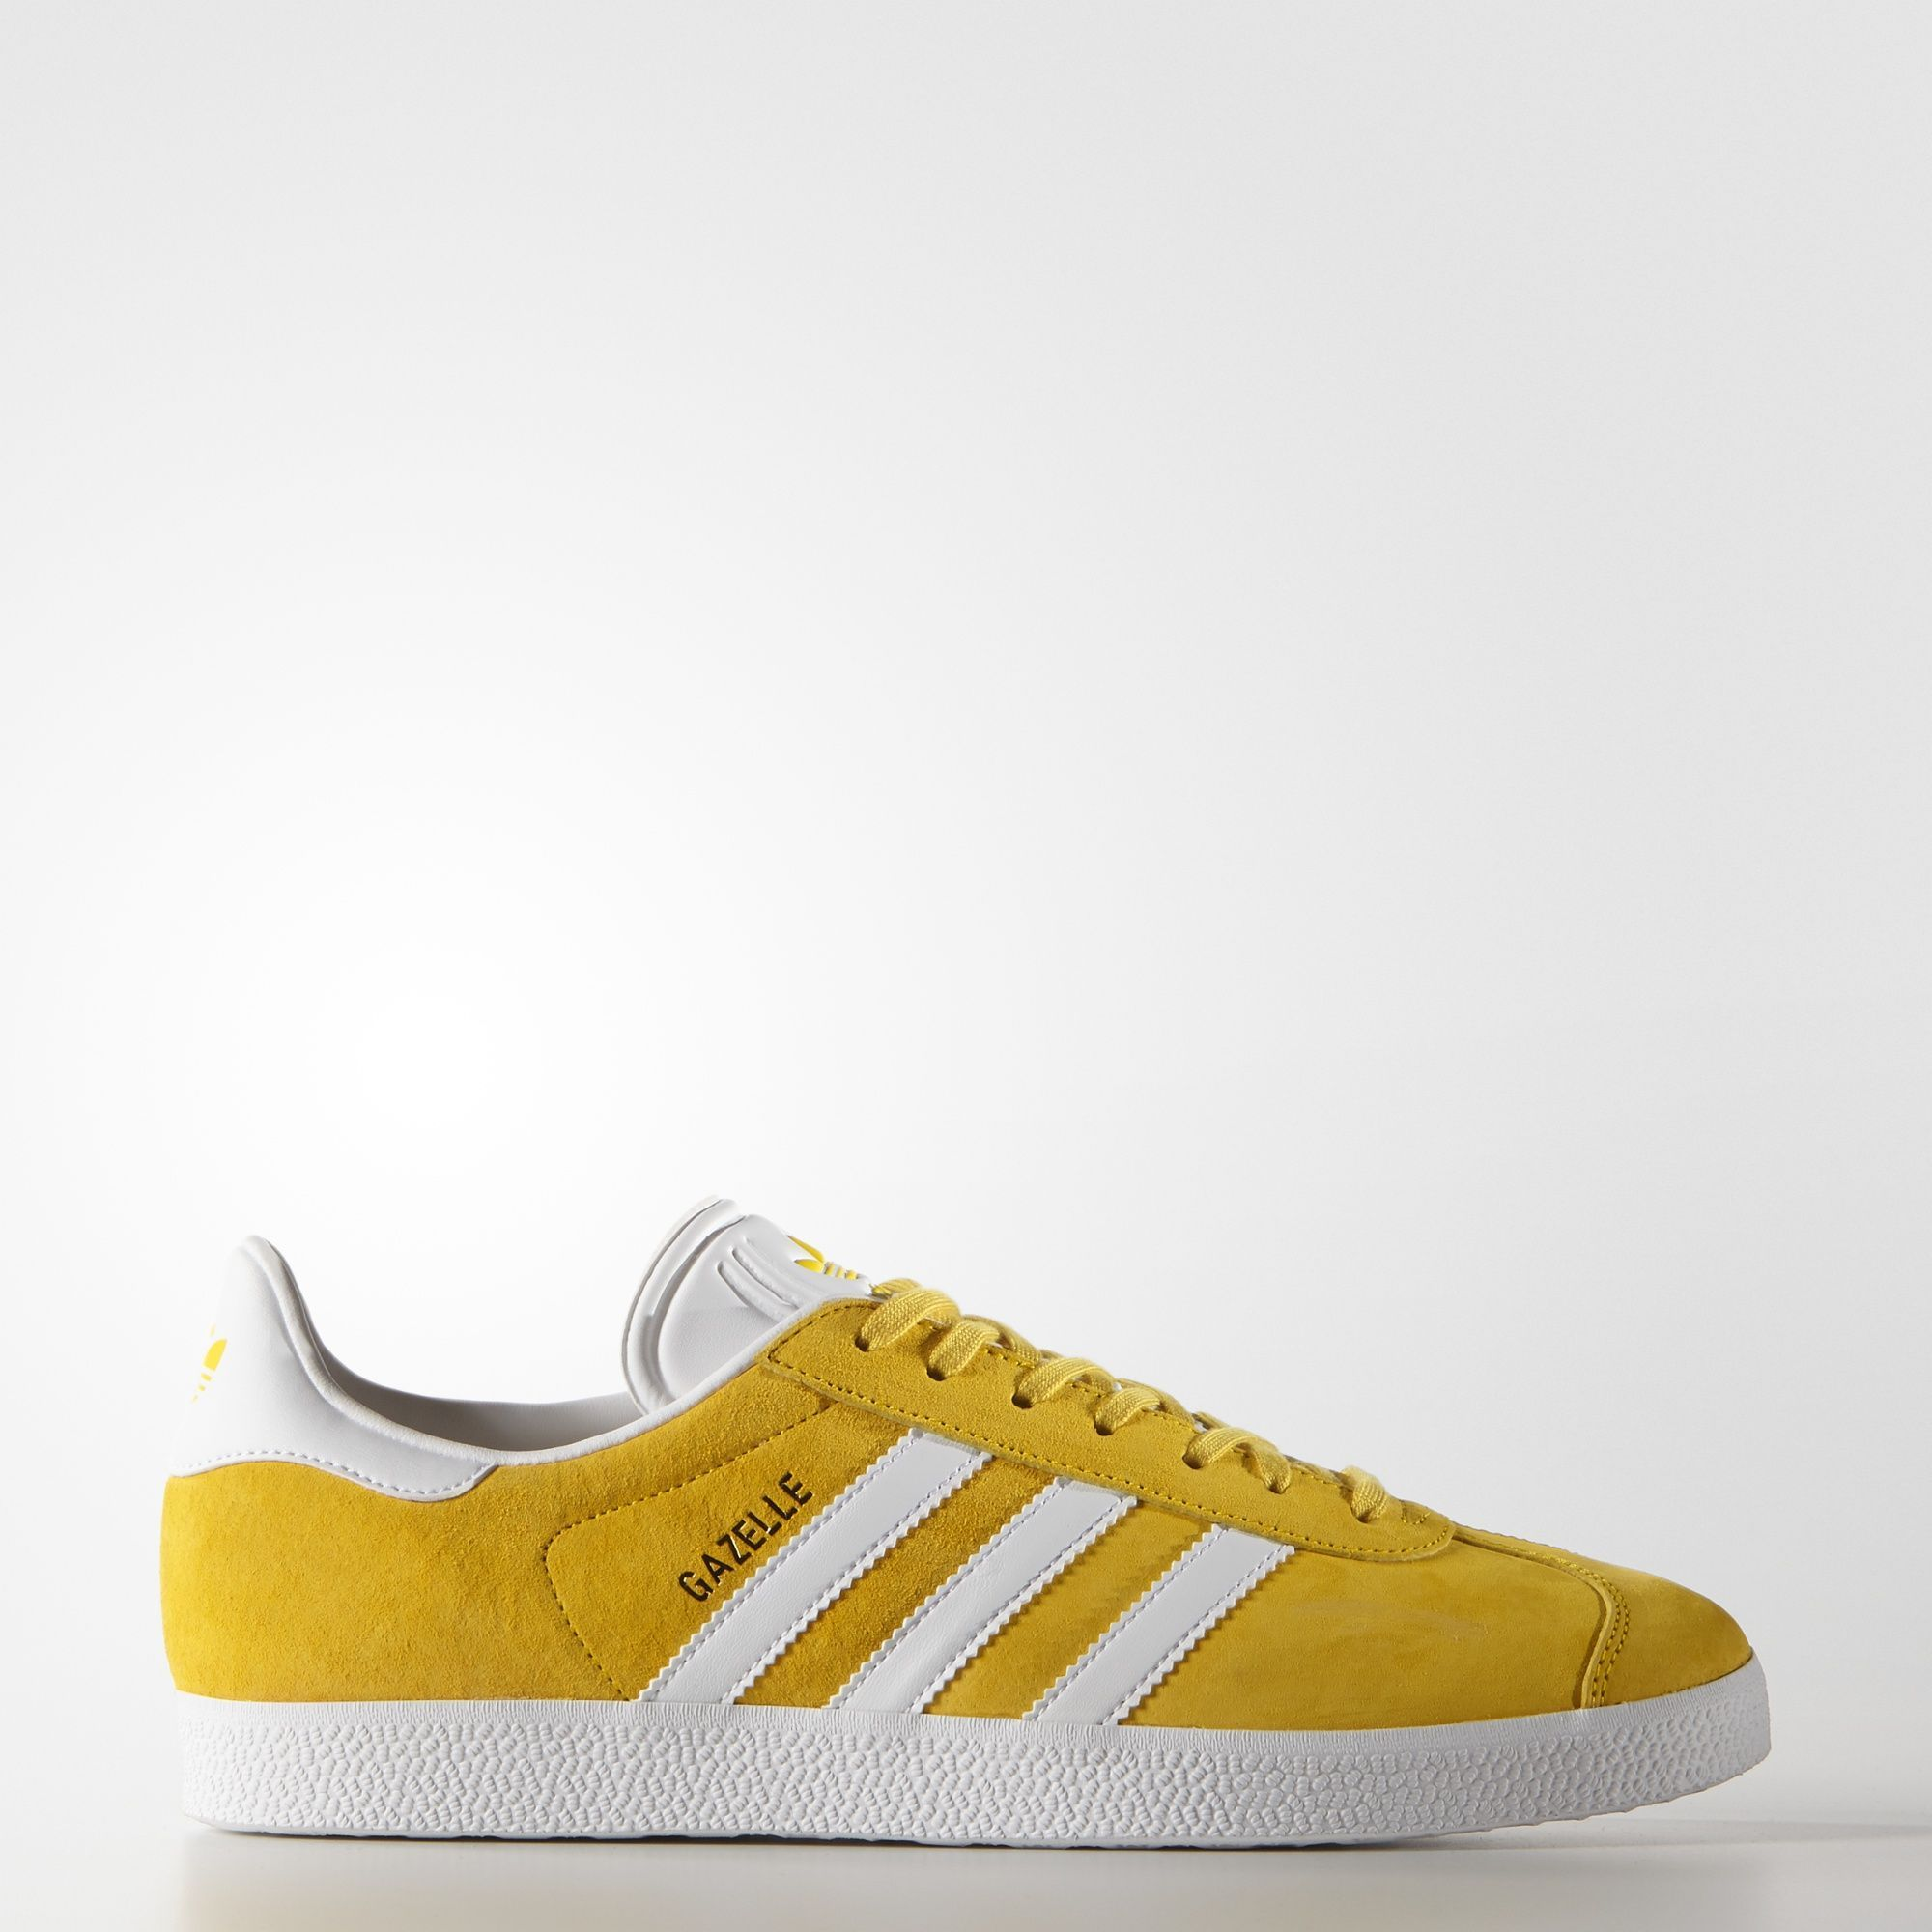 check out 92756 61d8c adidas - Gazelle Shoes yellow (pinned color) size 8.5